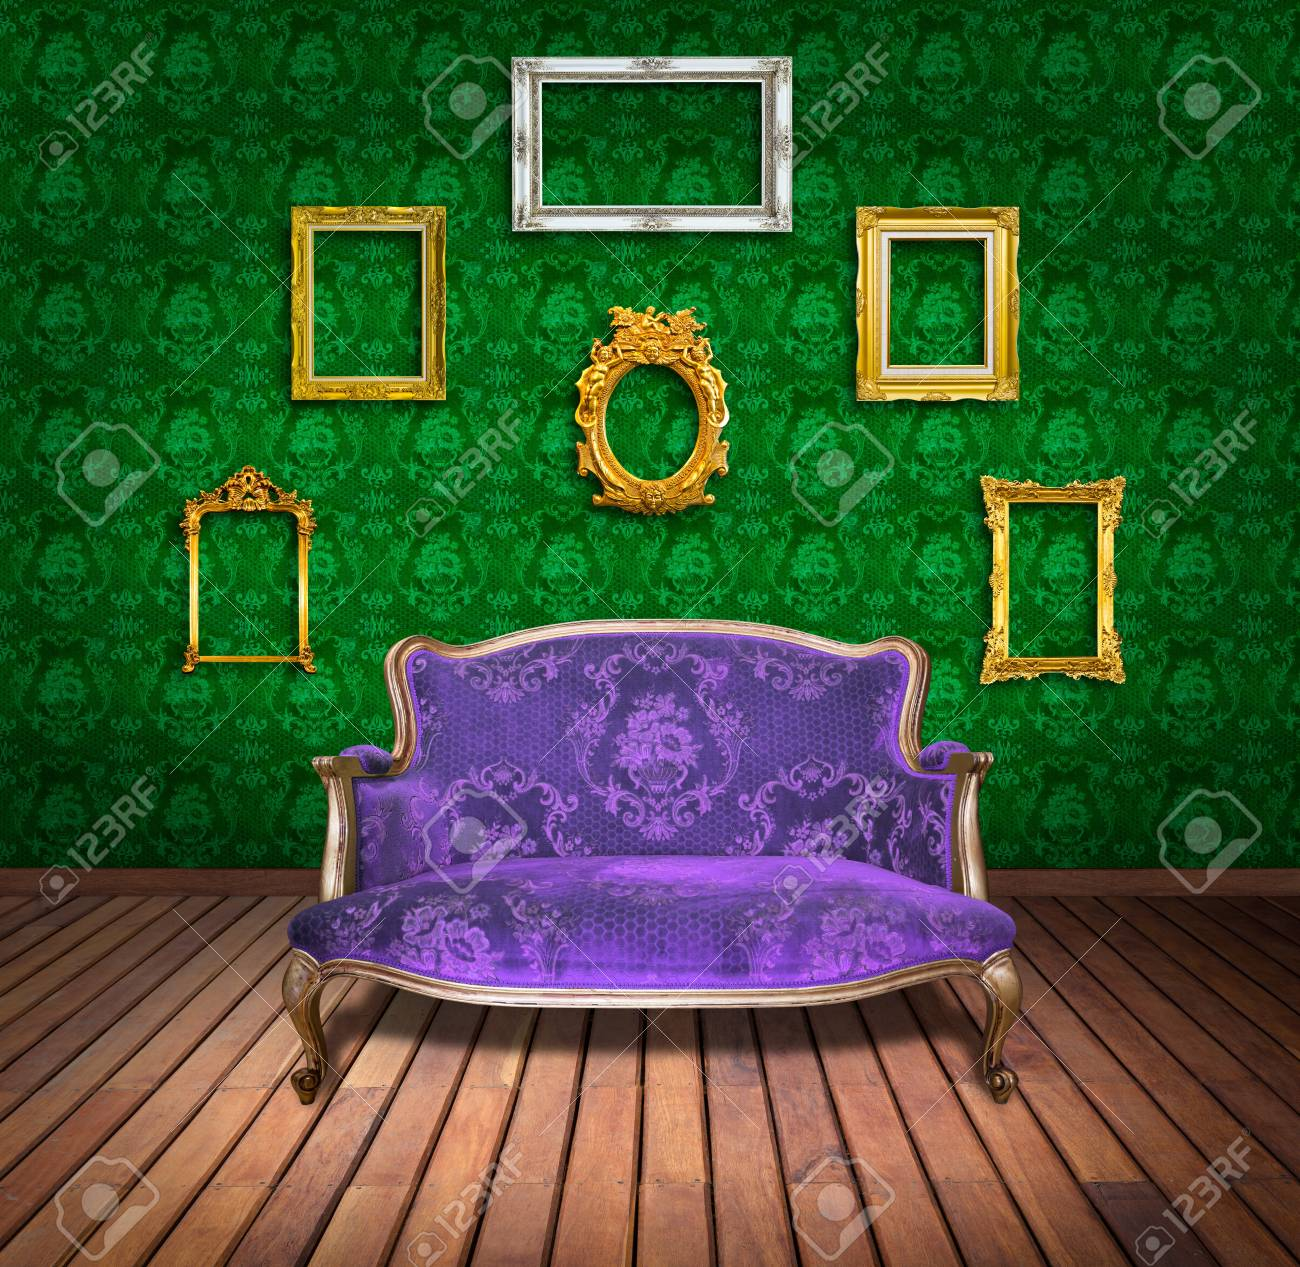 vintage luxury armchair and frame in green wallpaper room Stock Photo - 13104818